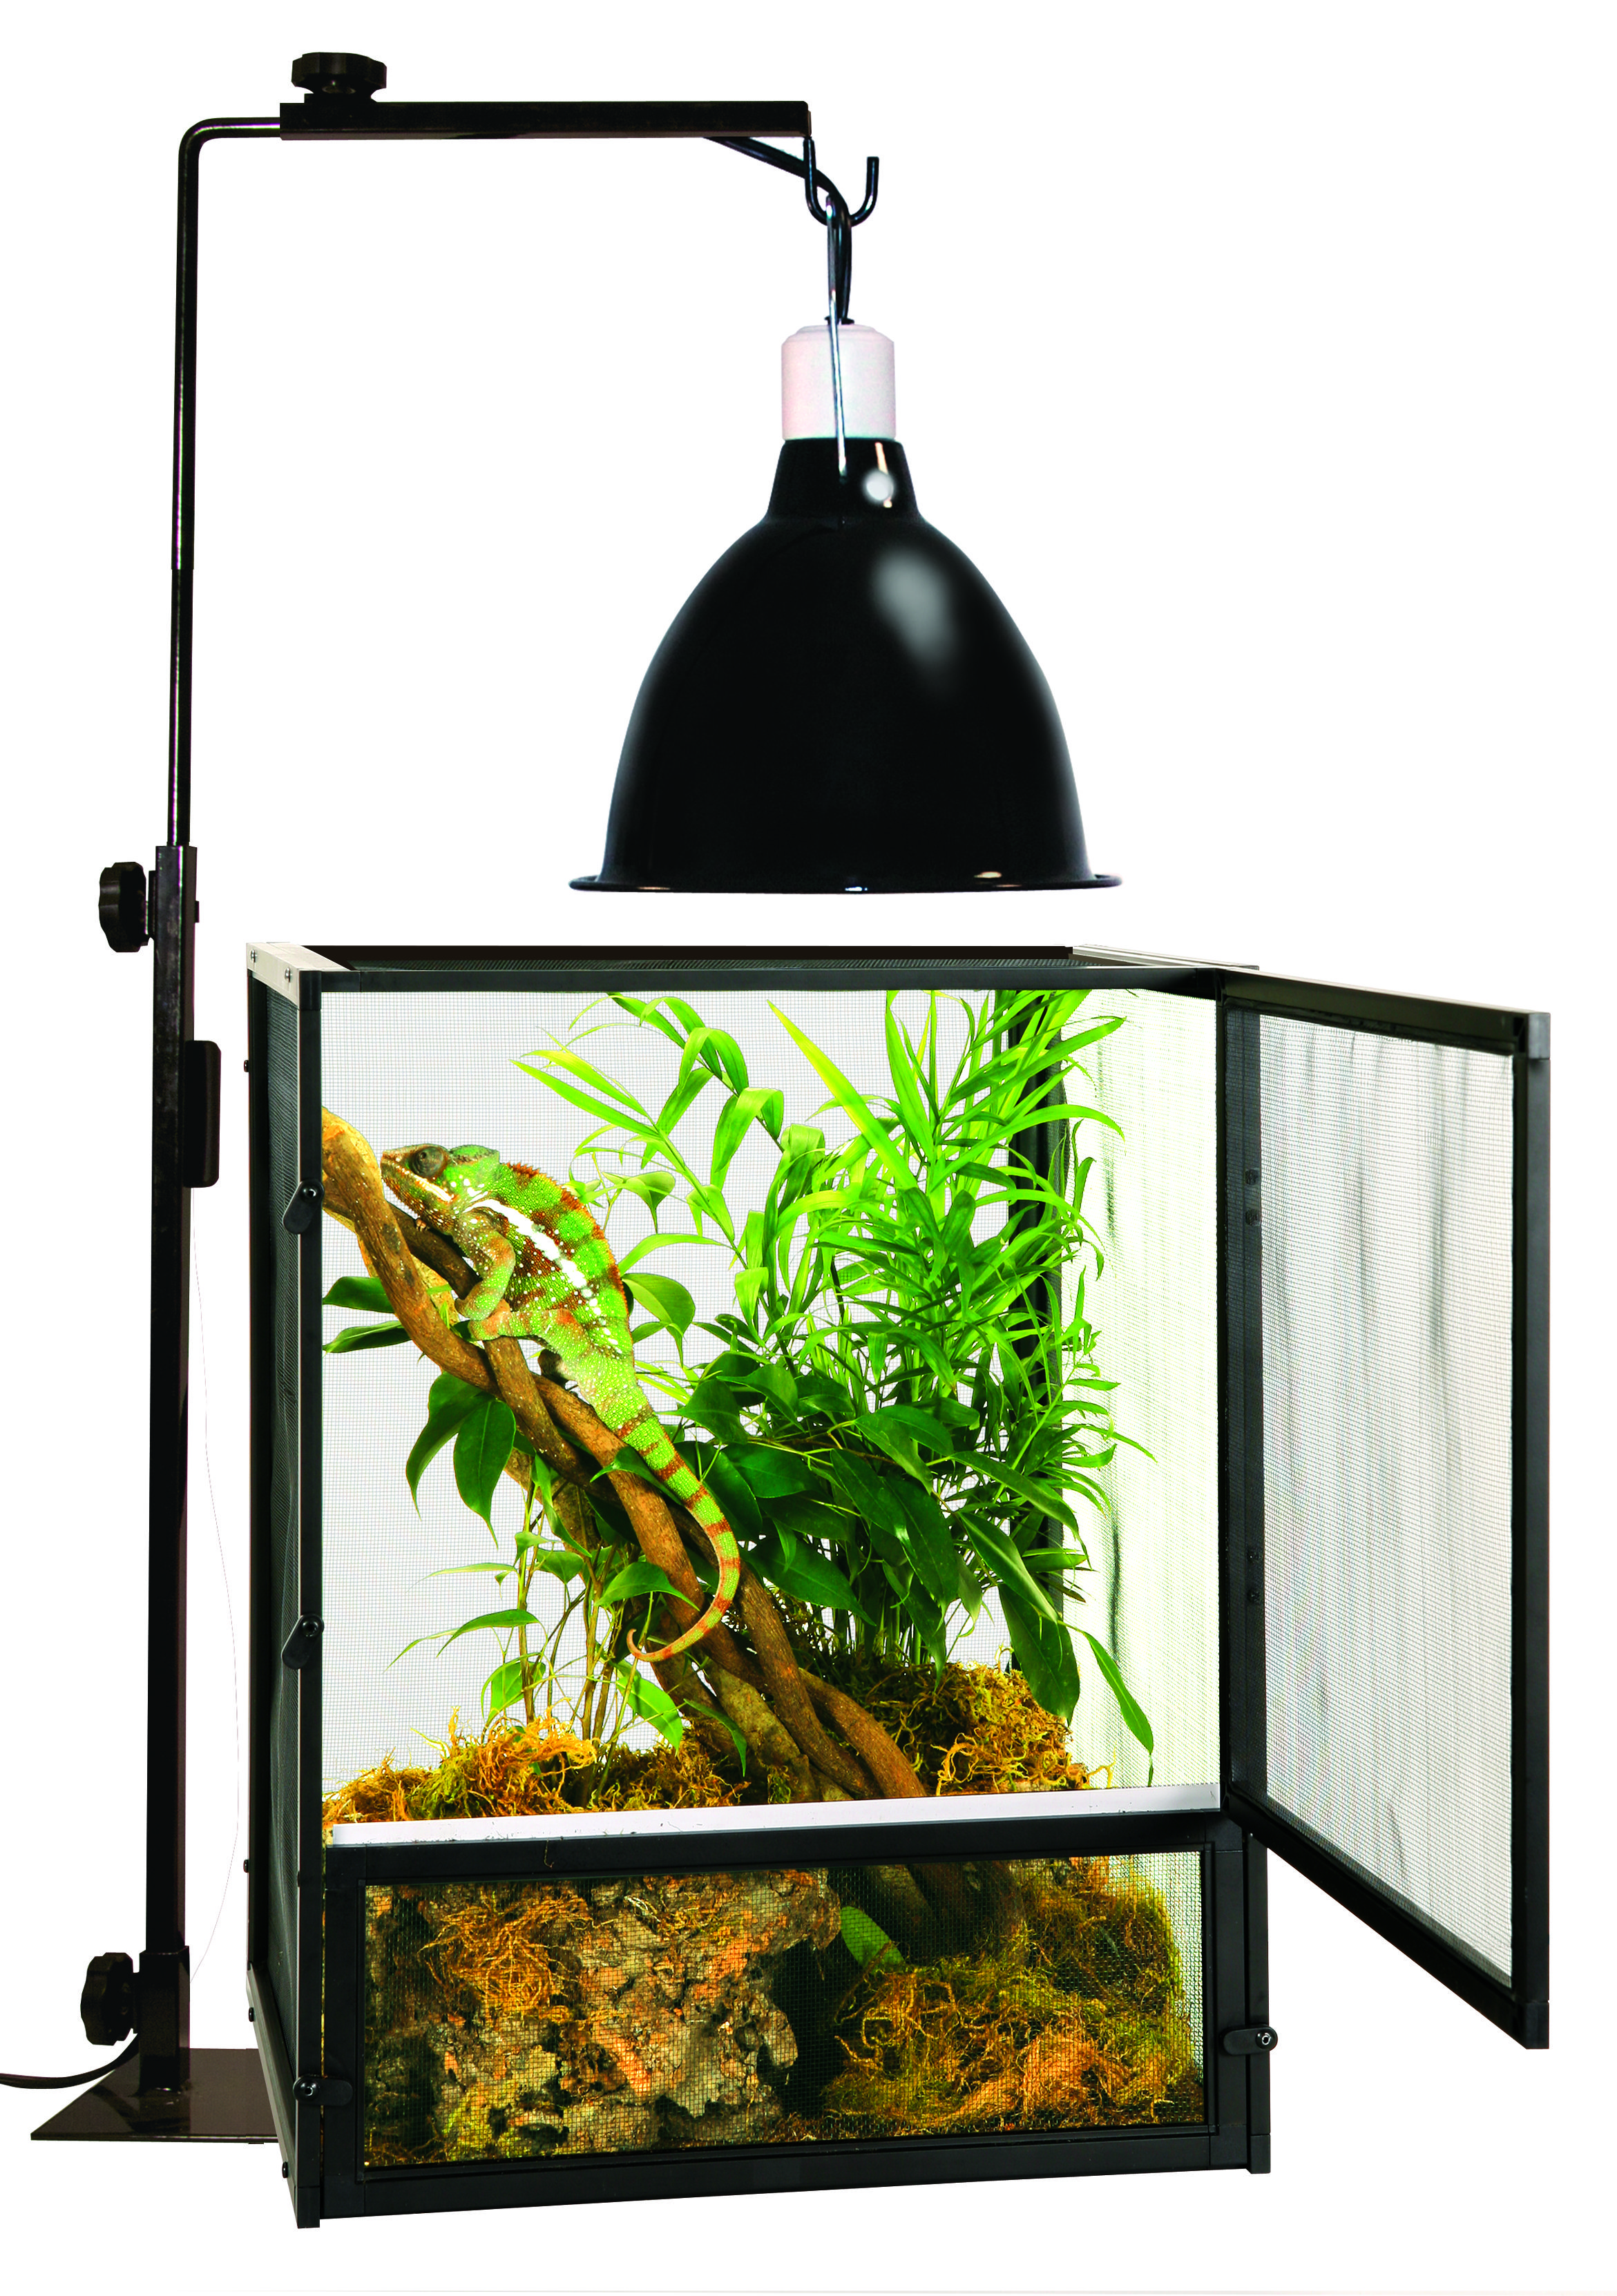 Use A Reptile Lamp Stand To Safely Suspend Any Of Zoo Medu0027s Lamp Fixtures  Or Drippers Above Your Enclosure. The Reptile Lamp Stand Is Available In  Two Sizes ...